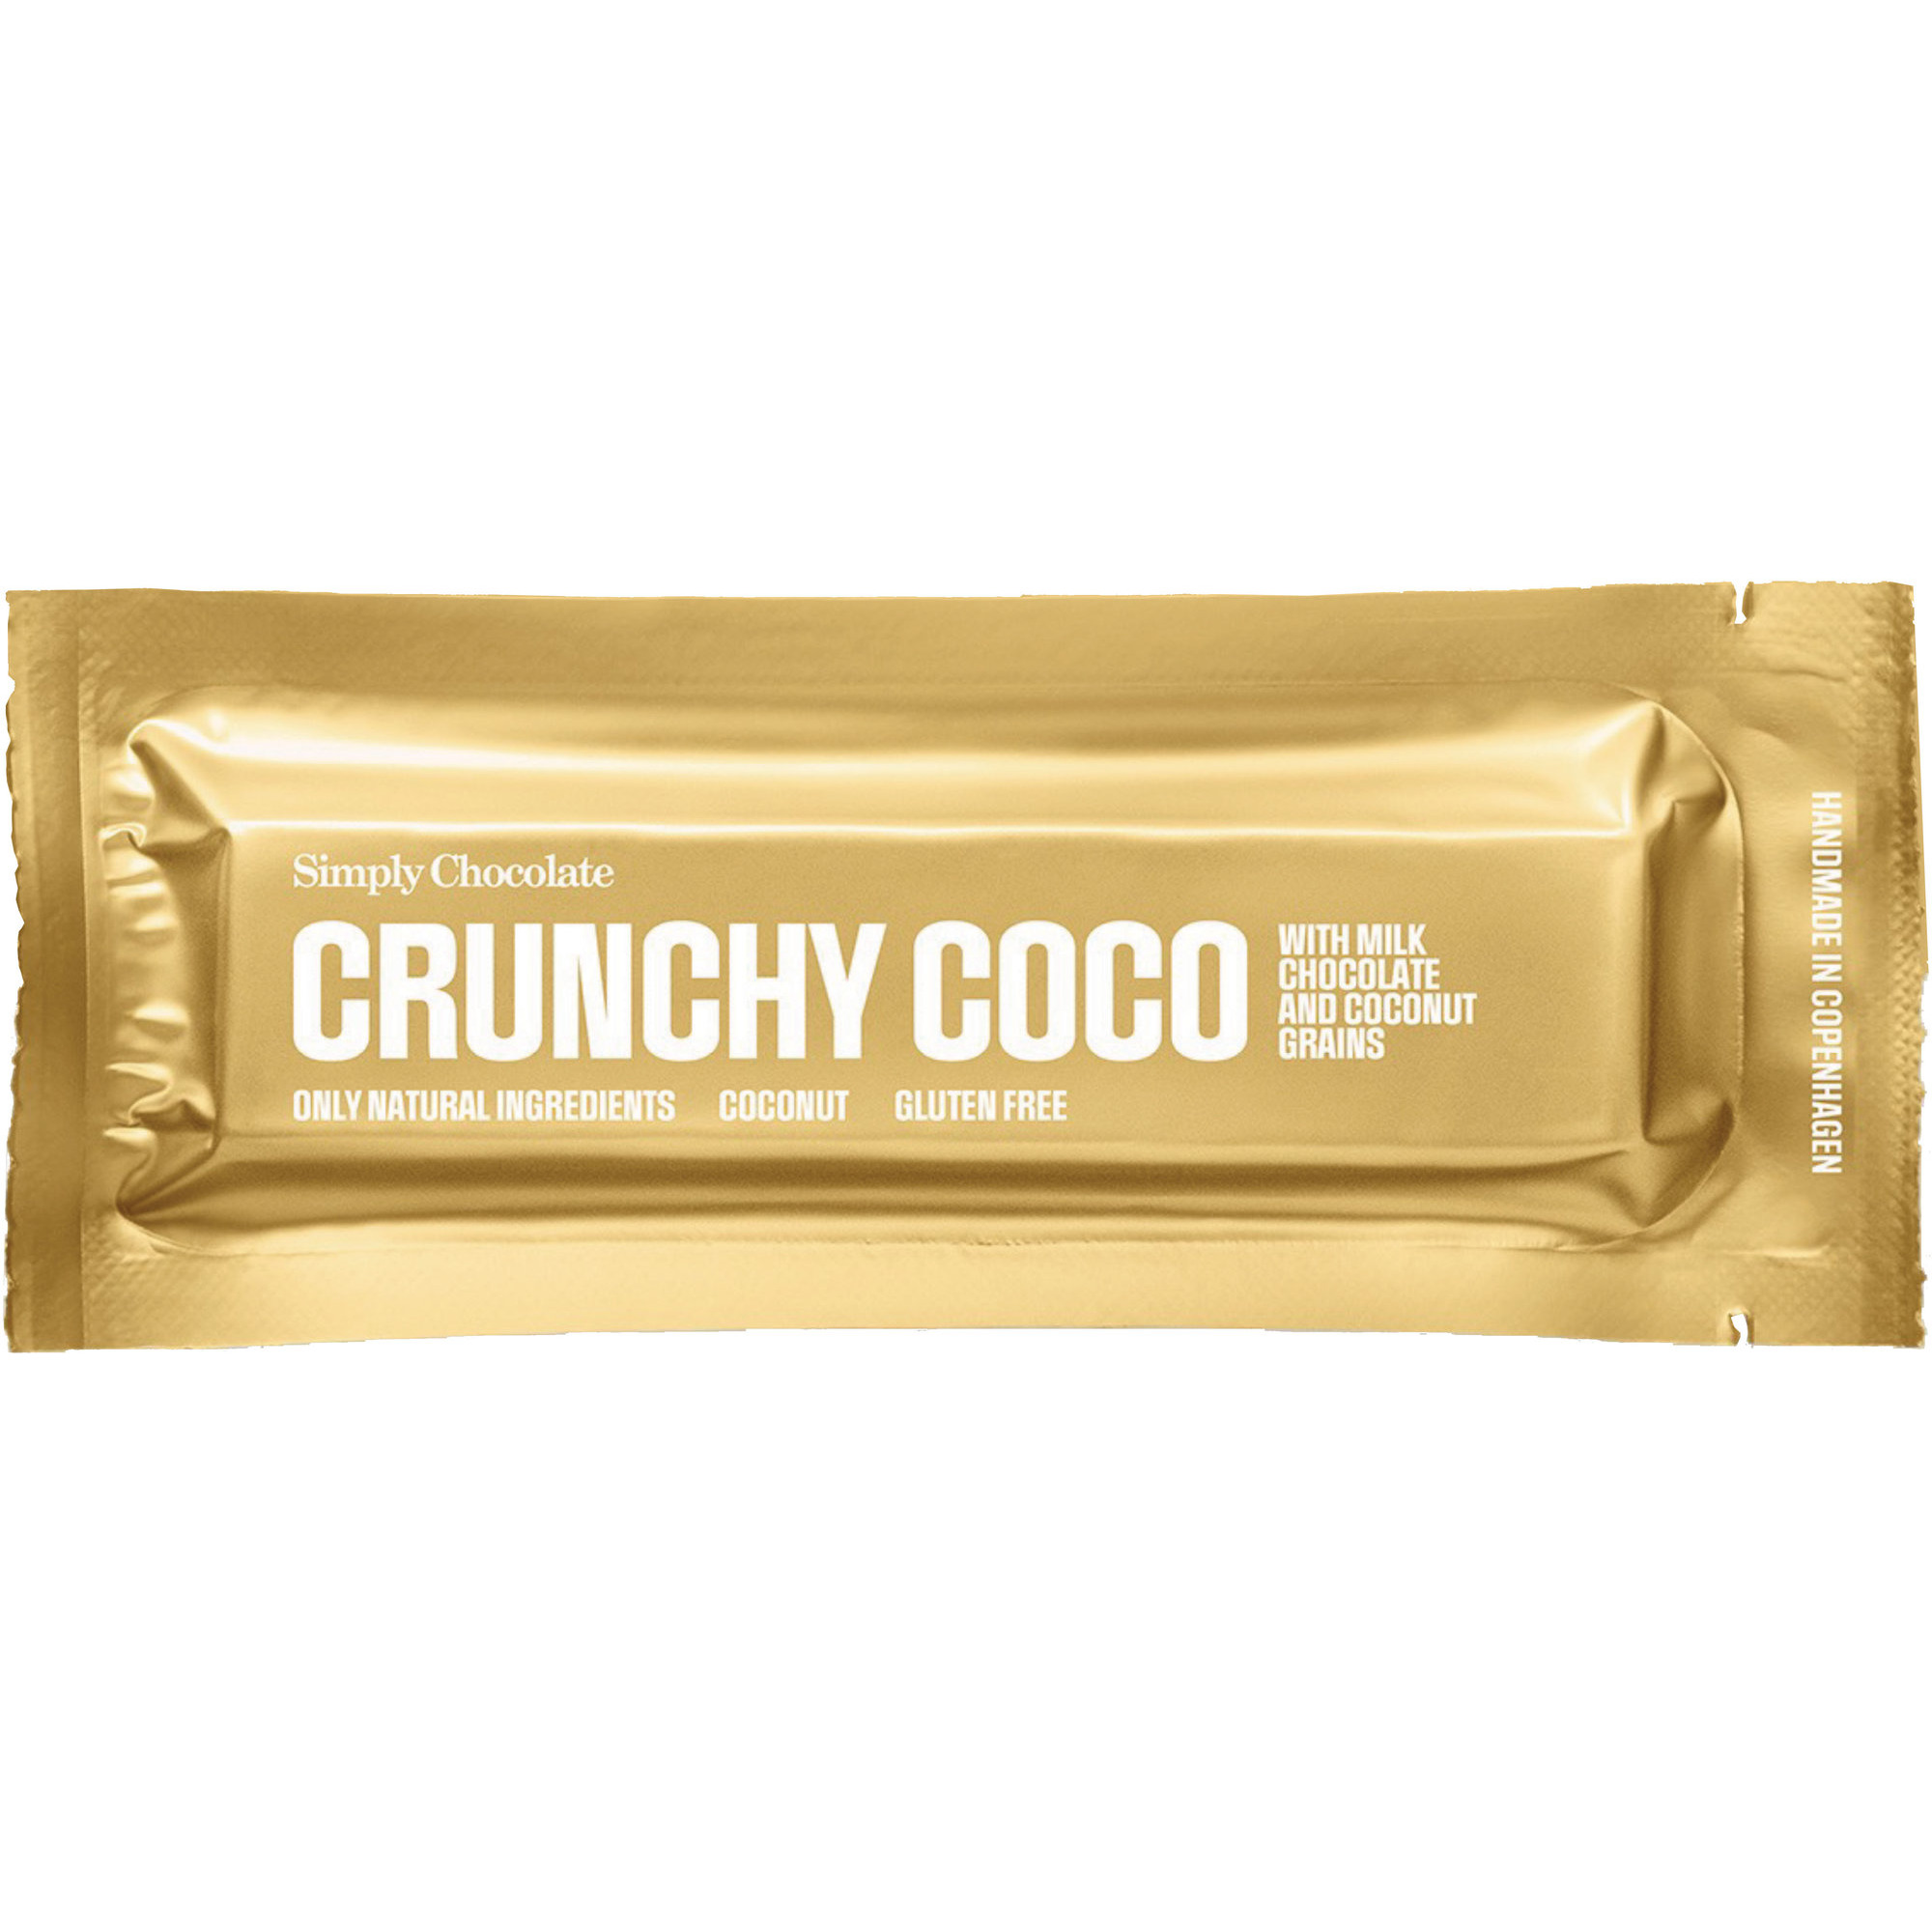 Simply Chocolate Crunchy Coco bar